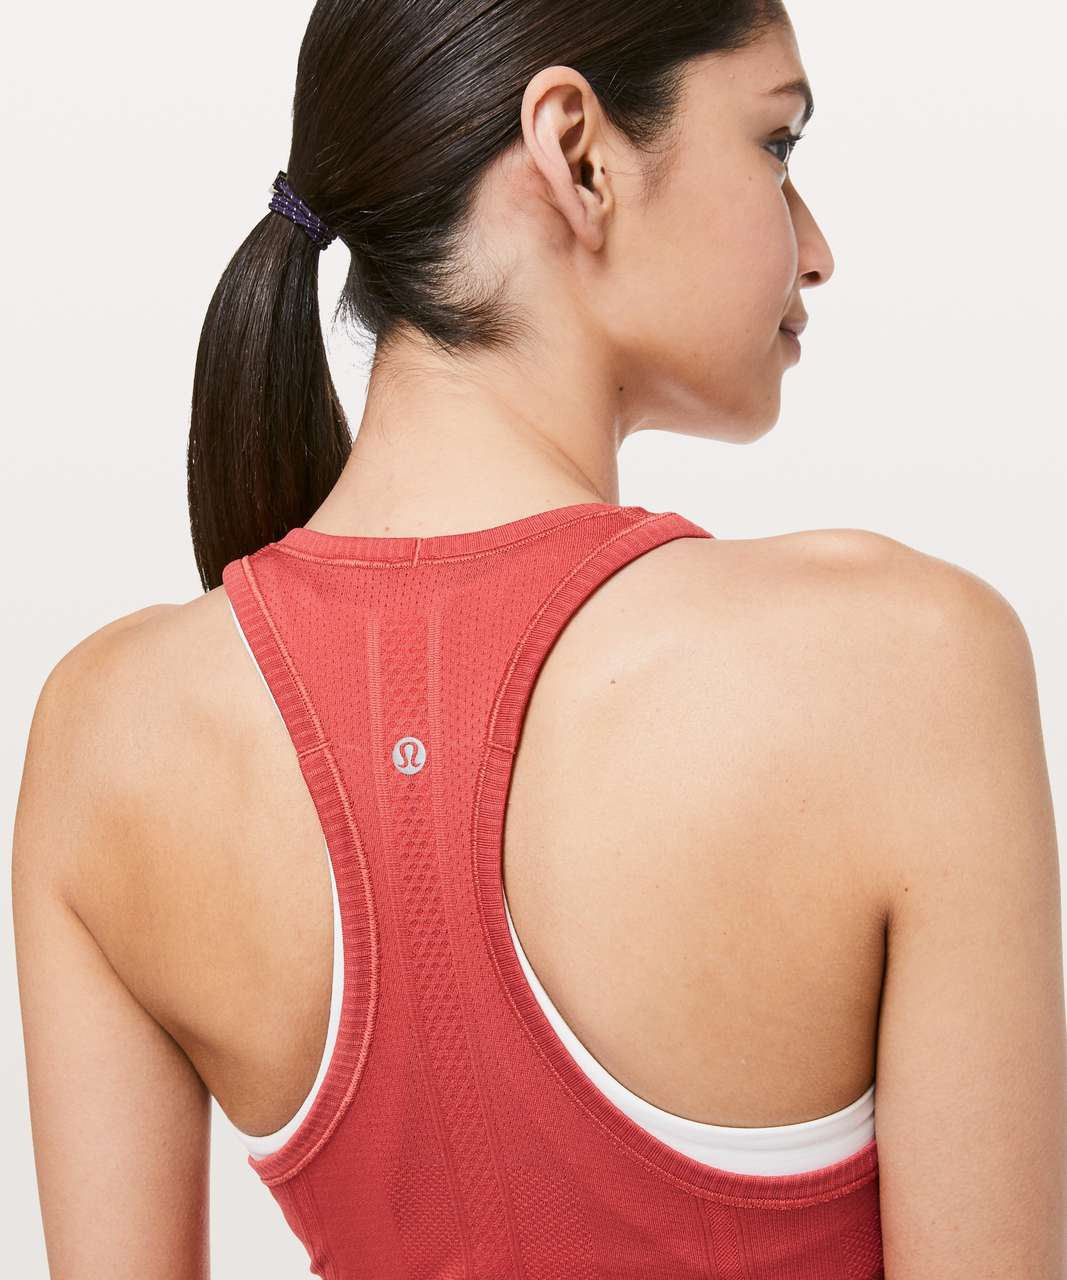 Lululemon Swiftly Tech Racerback - Poppy Coral / Poppy Coral